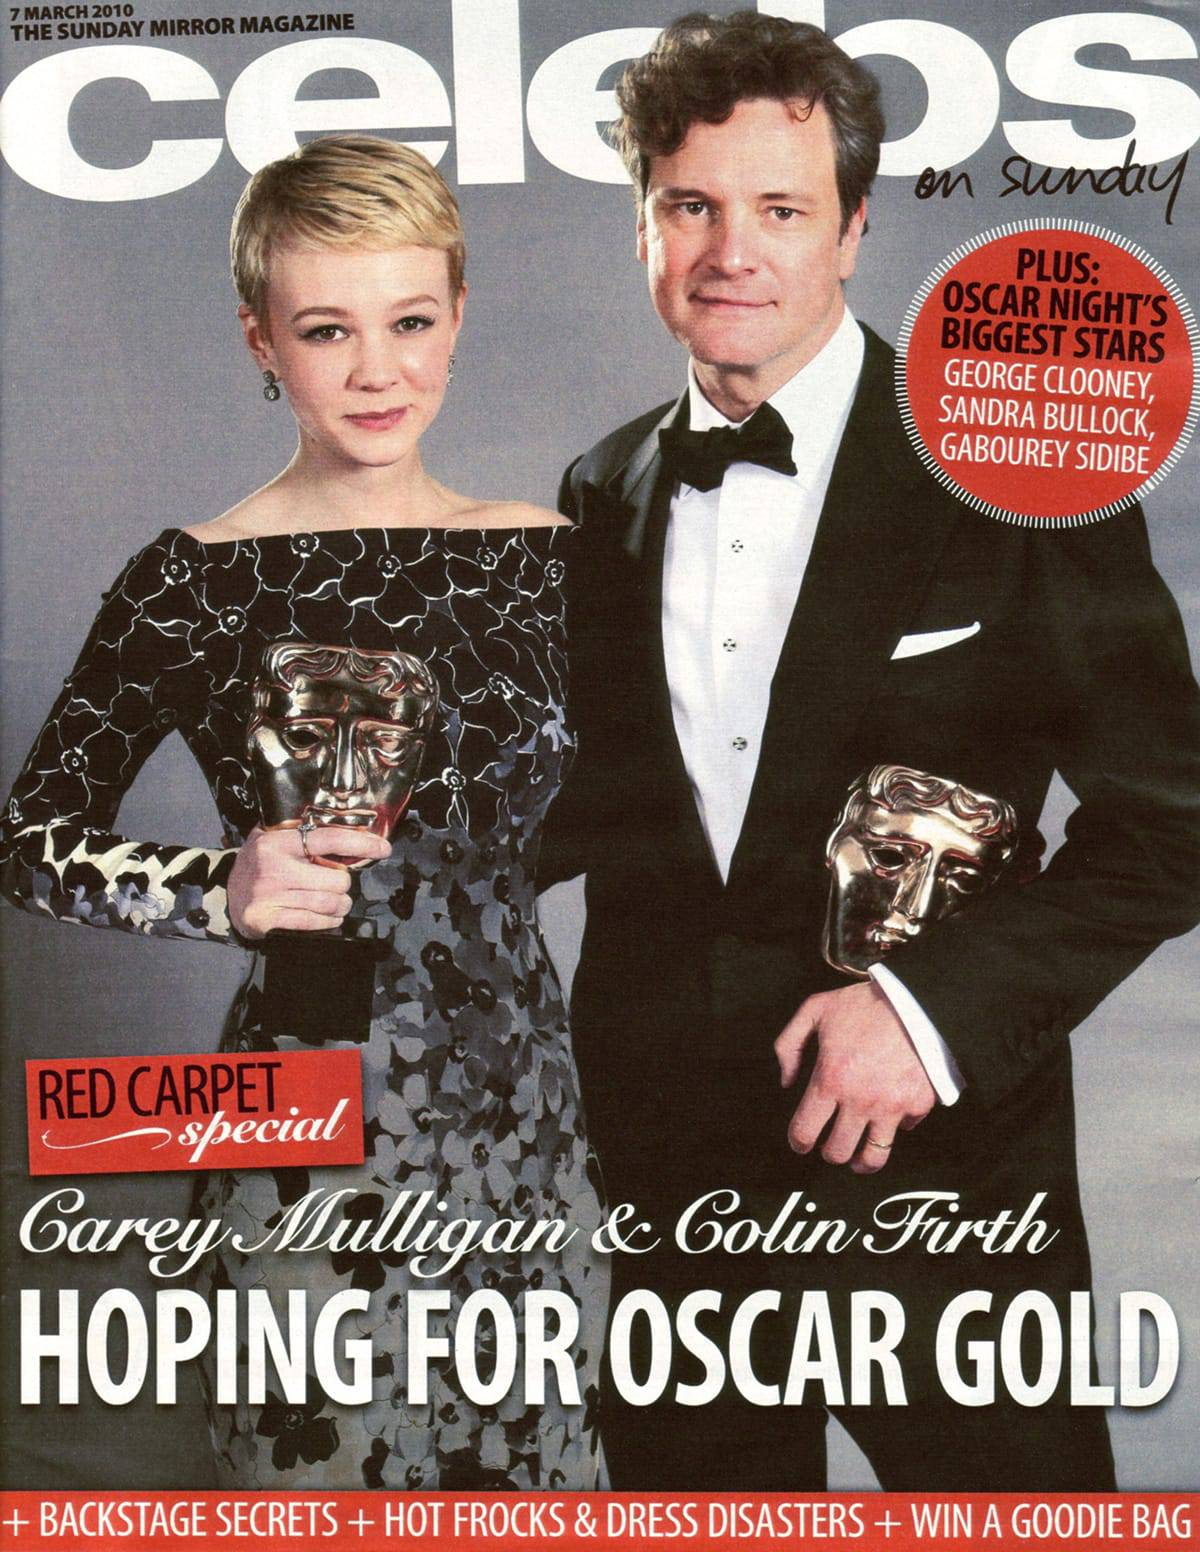 Celebs mag Mar 10 cover